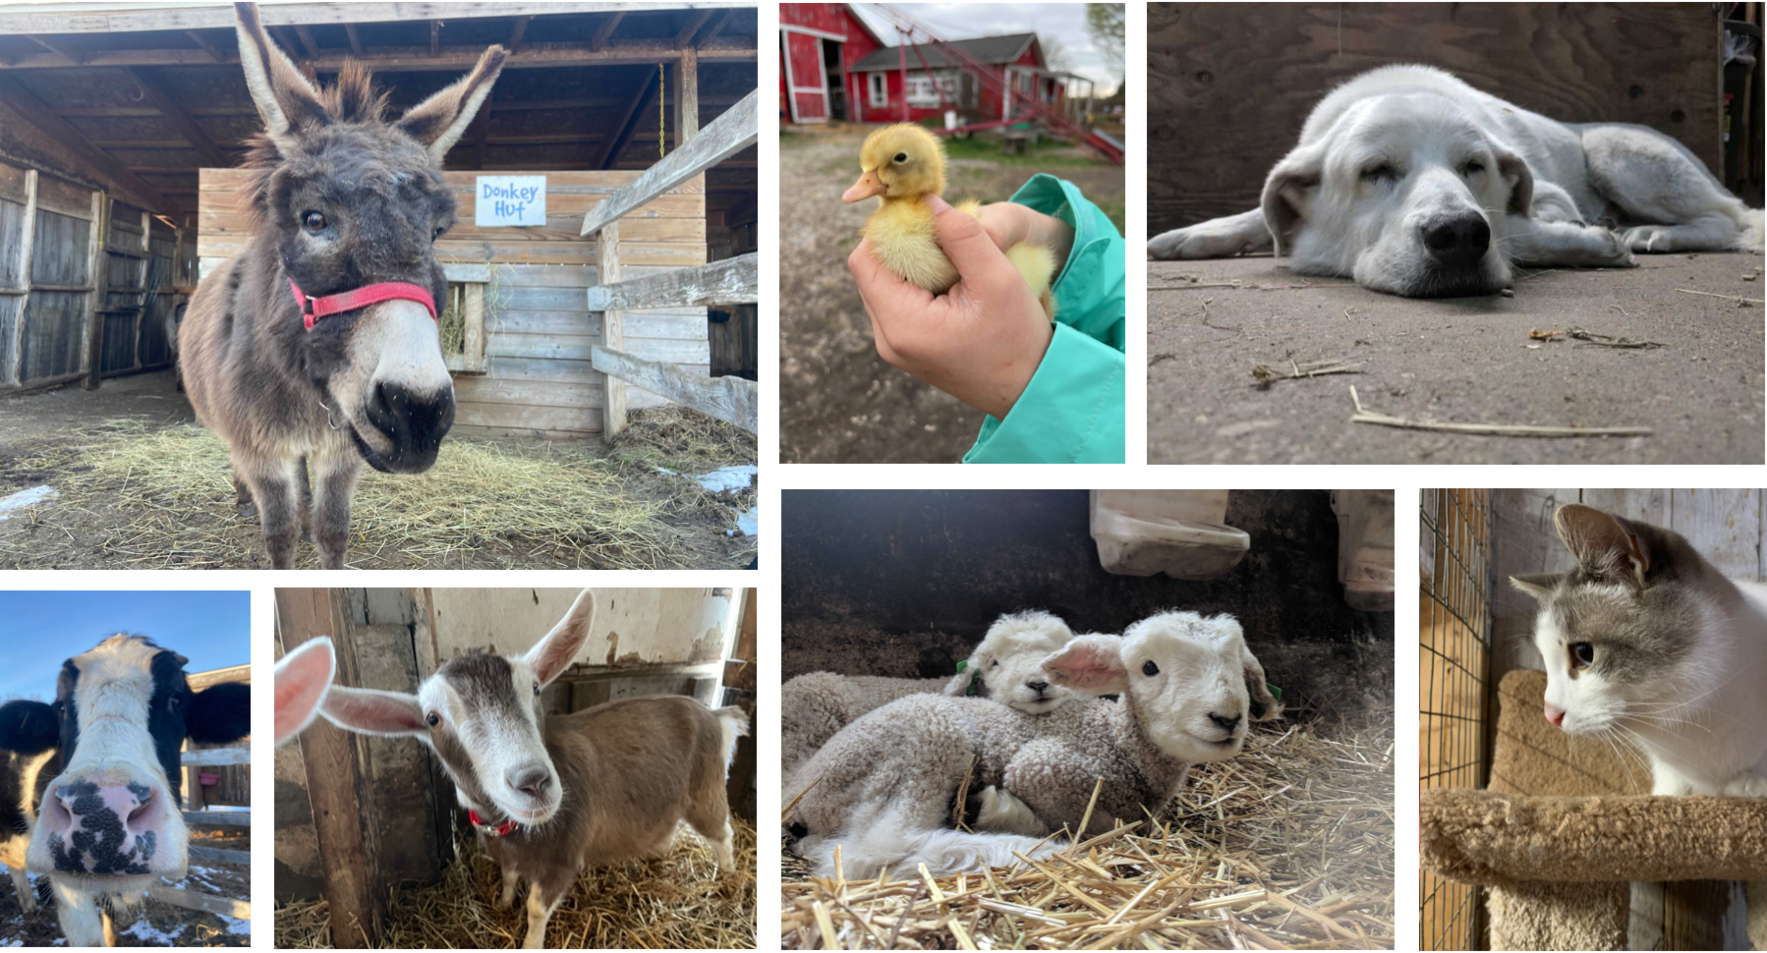 Visit The Critter Barn! image